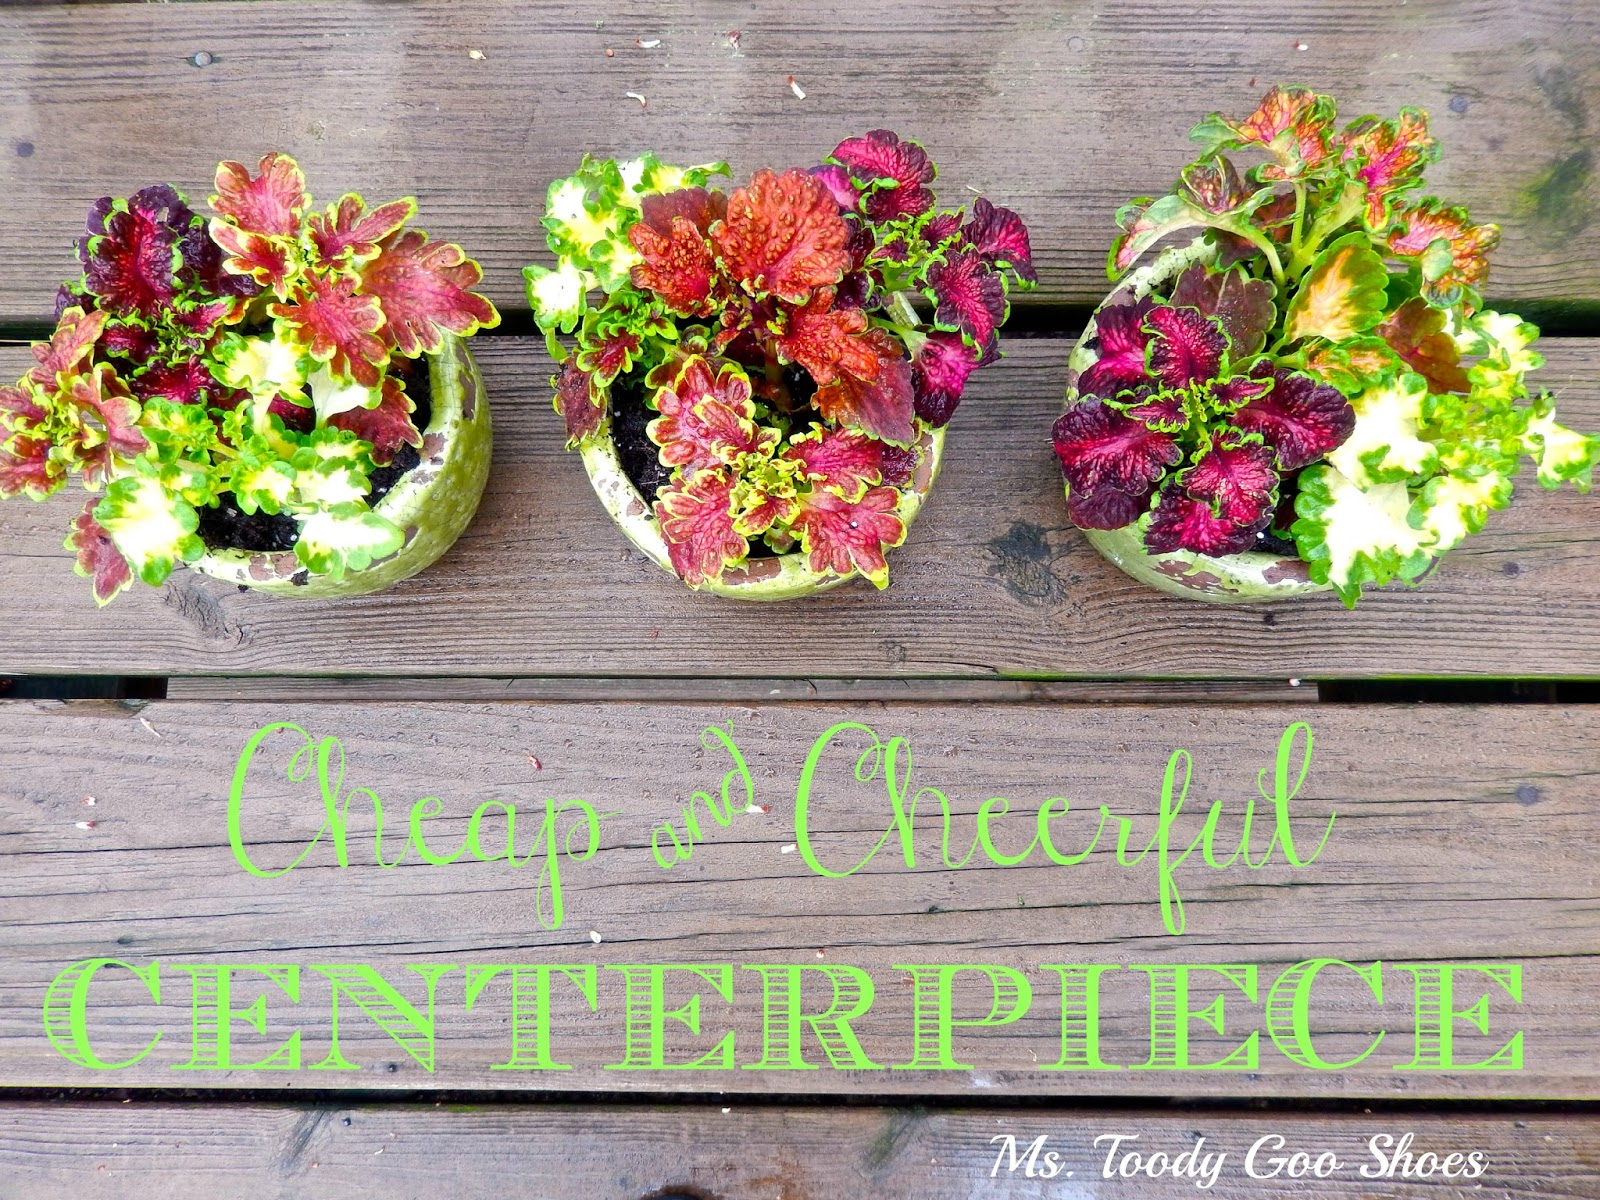 Ms Toody Goo Shoes Cheap Cheerful Centerpiece